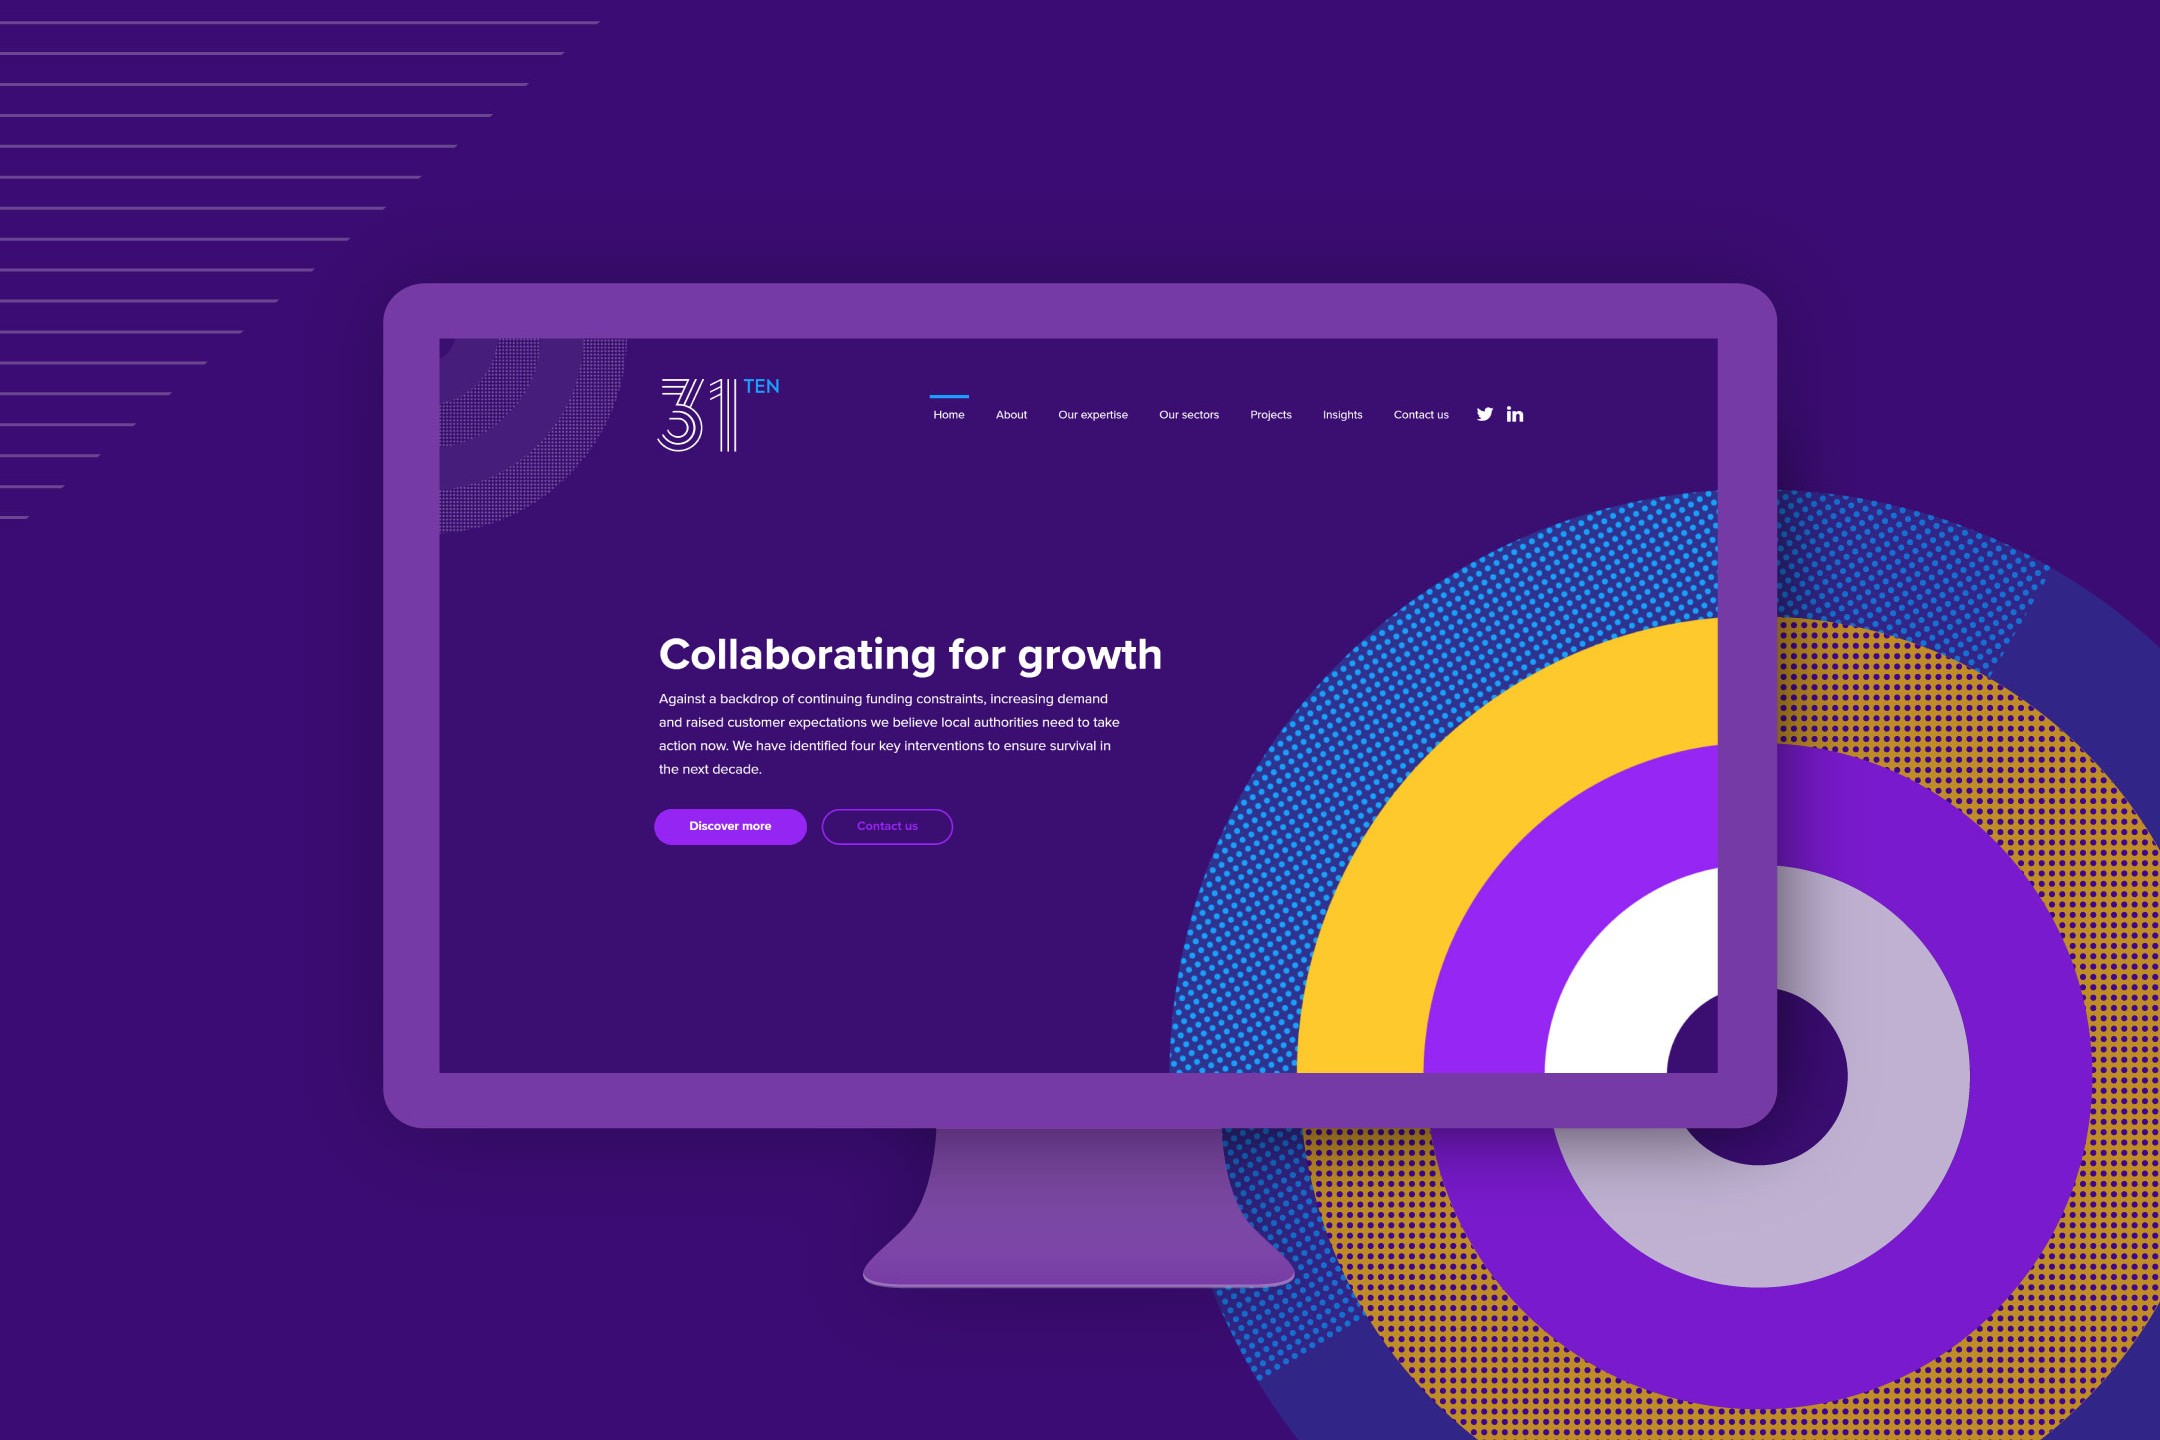 31ten Consulting website